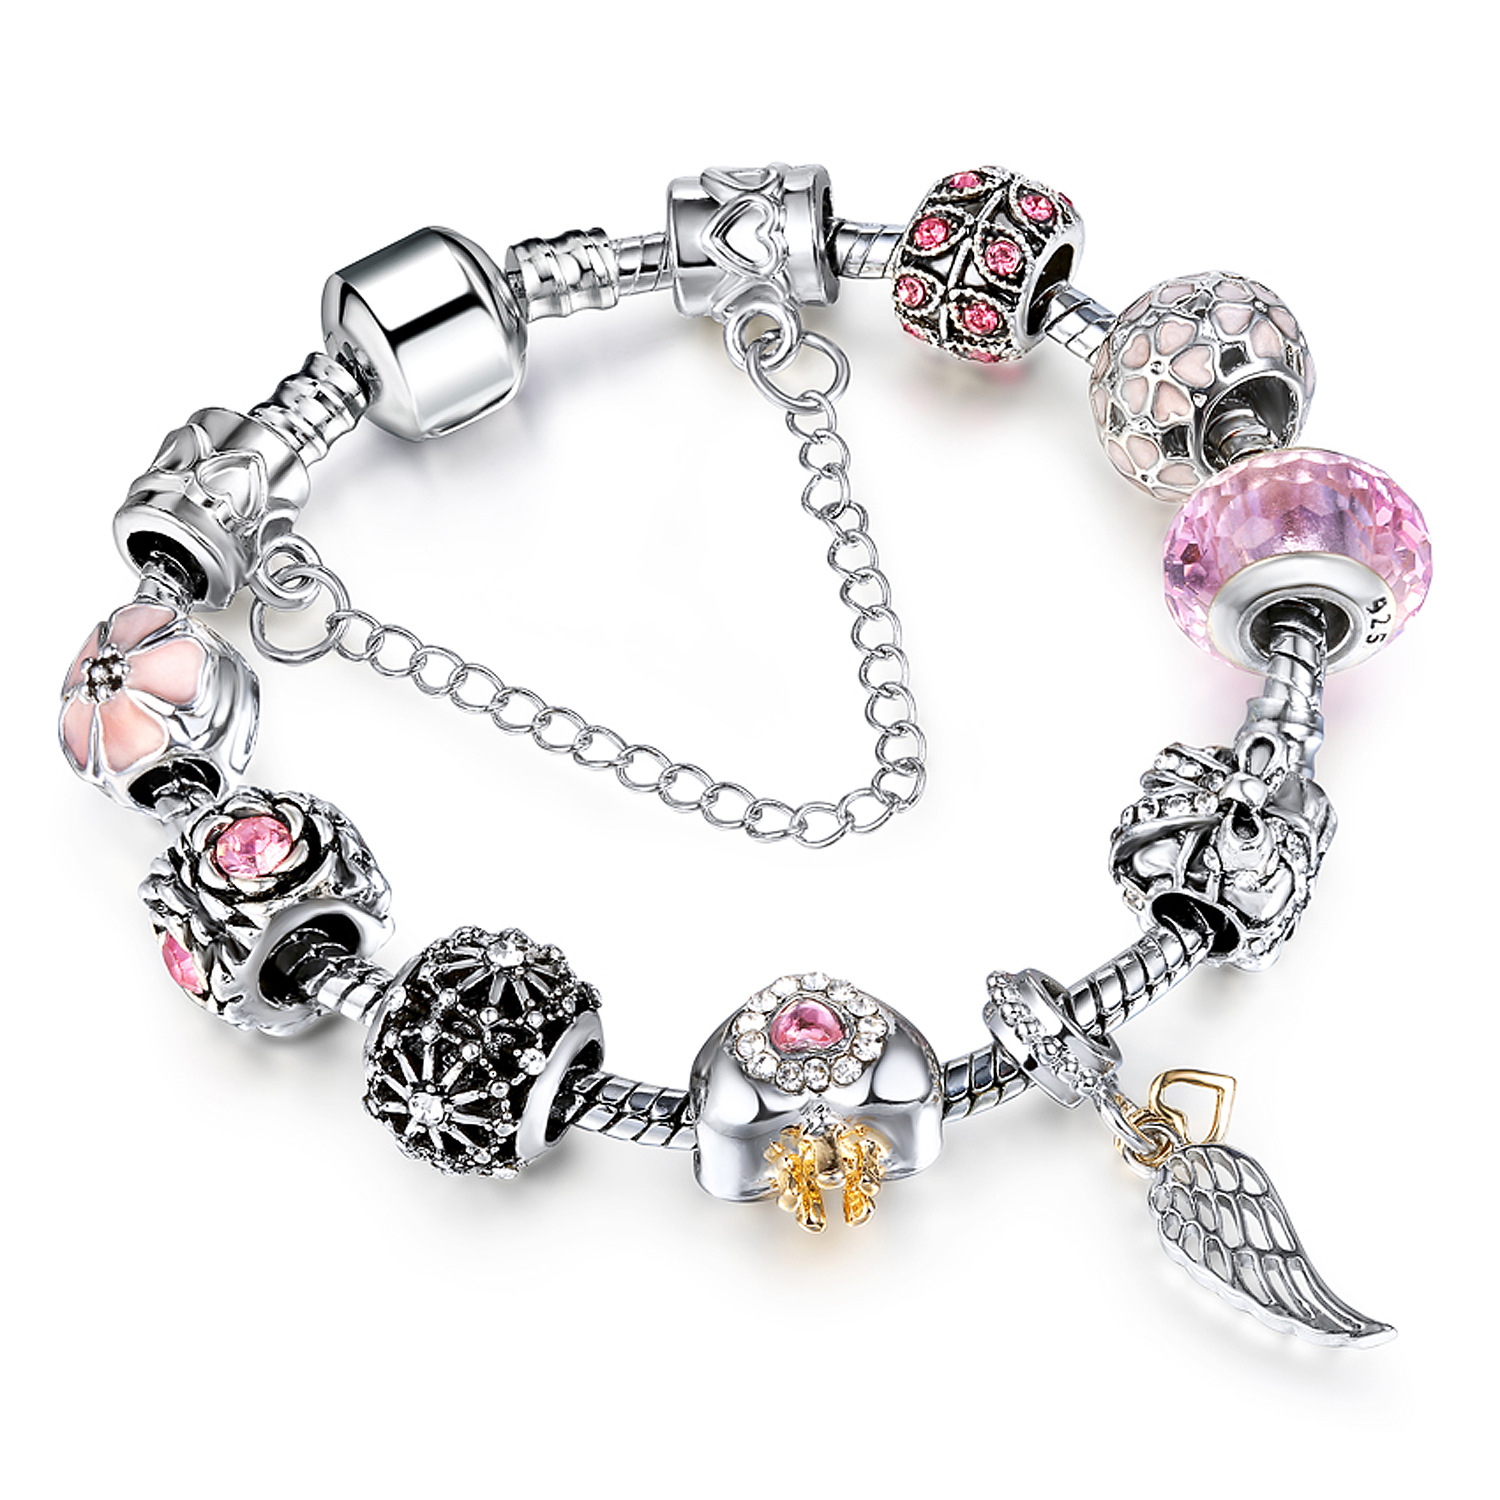 pink crystal large beads bracelet accessories silver charm. Black Bedroom Furniture Sets. Home Design Ideas